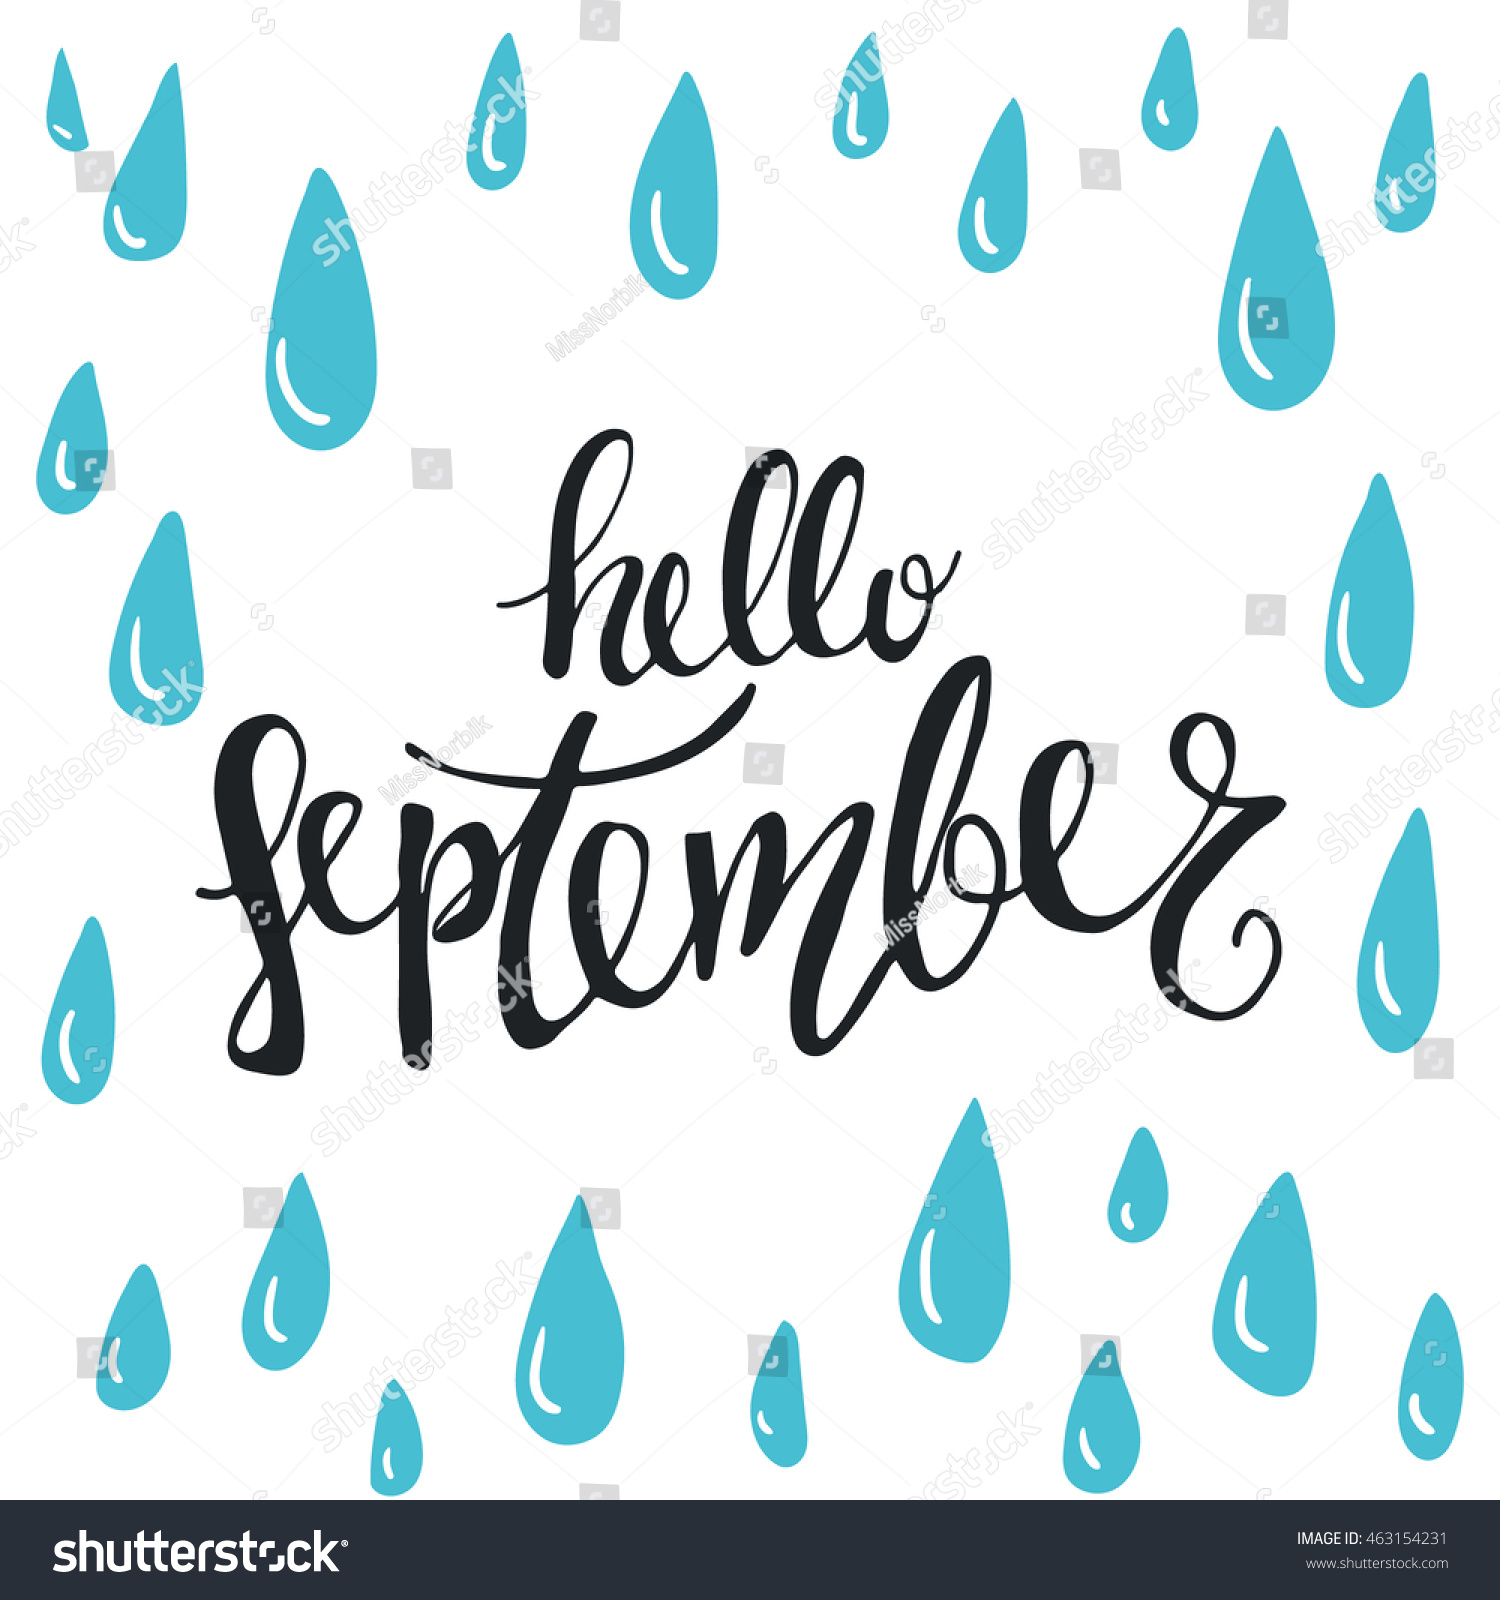 Wonderful Vector Hand Drawn Phrase   Hello September. Cute Greeting Card With Rain  Drops And Handwritten